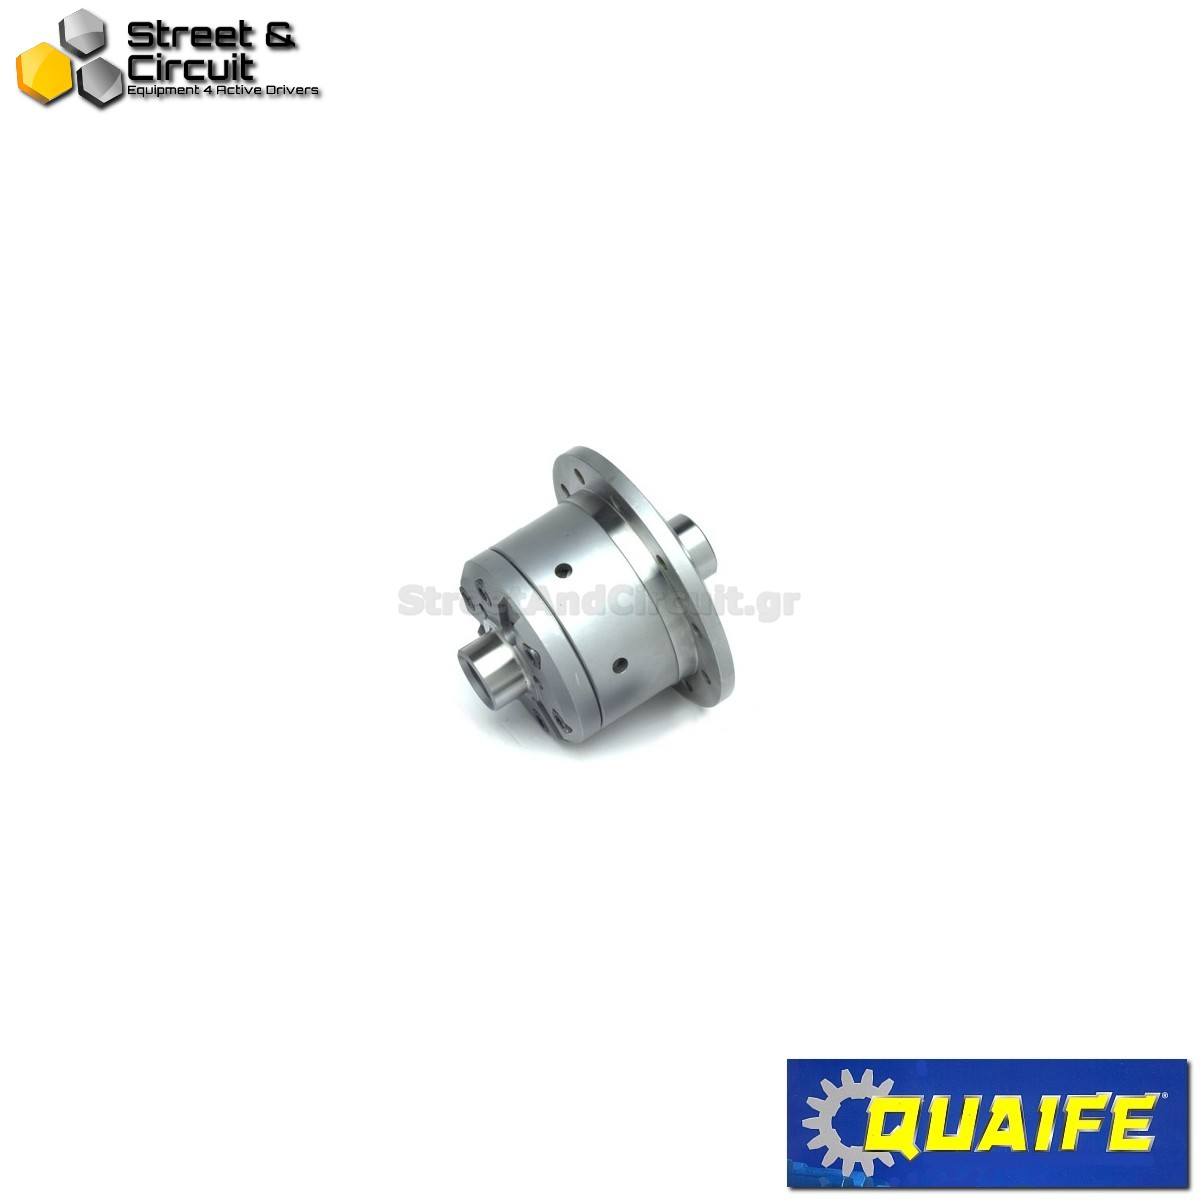 Land Rover Range Rover Quaife ATB Μπλοκέ Διαφορικό/Limited Slip Diff